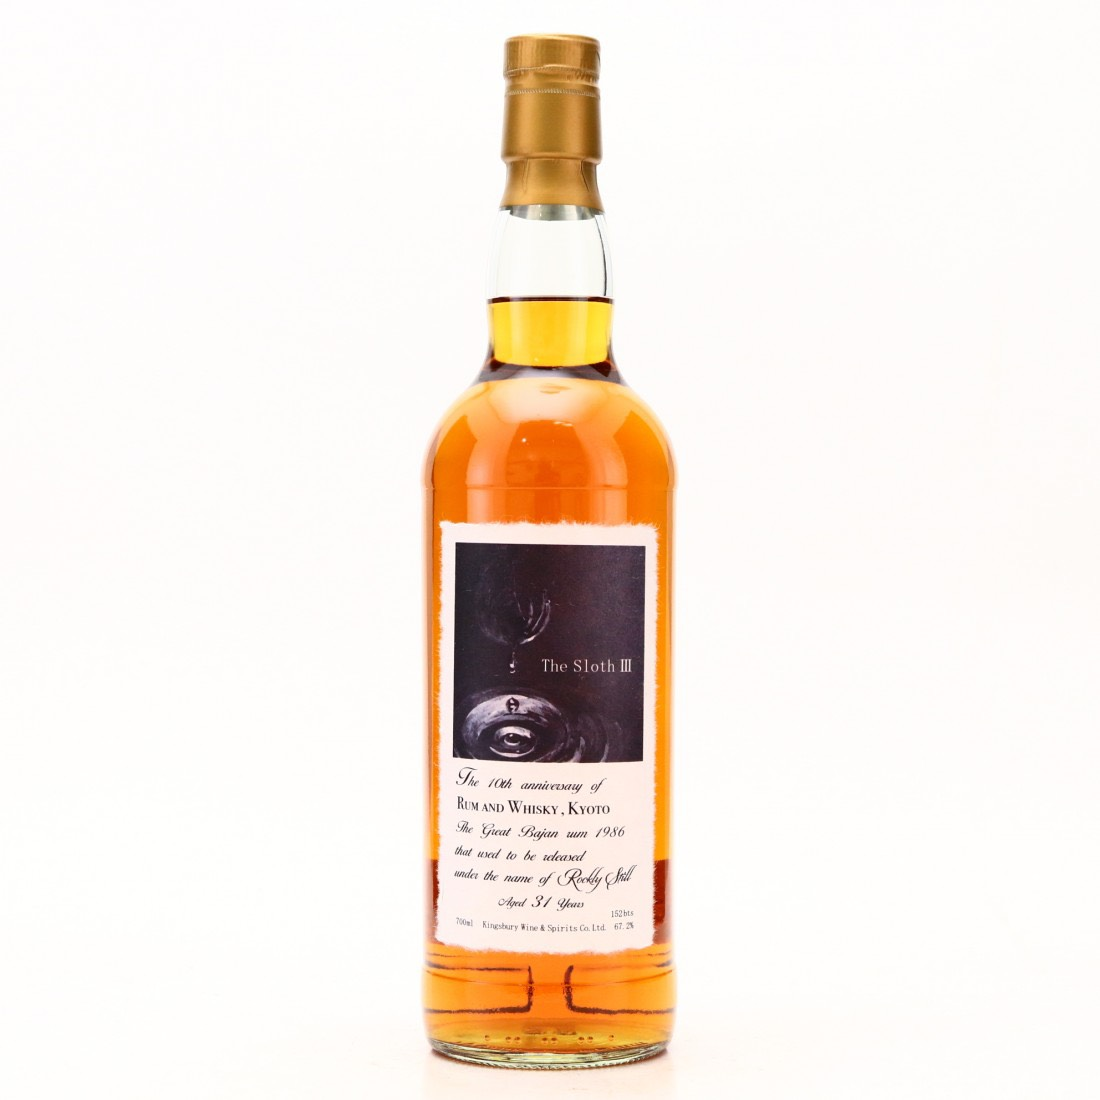 Bottle image of The Sloth III (Rum and Whisky, Tokyo)